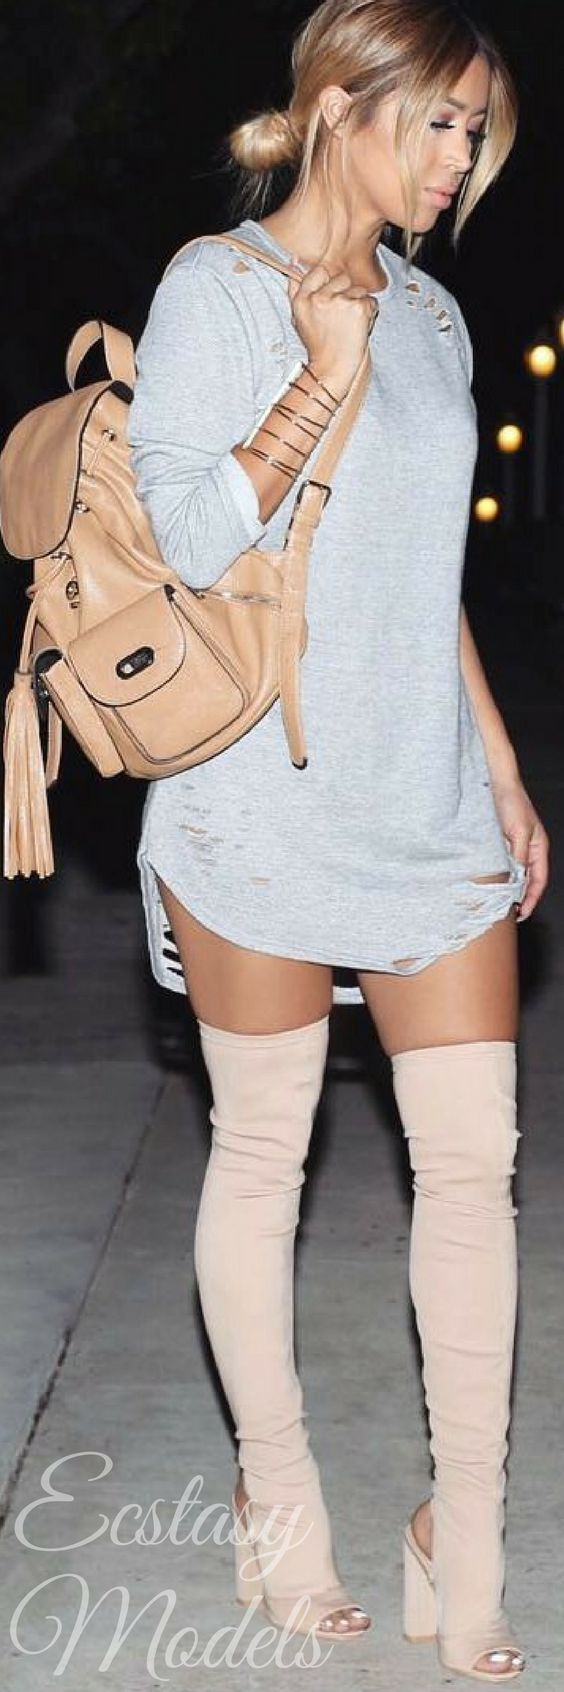 Thigh High Boots // Fashion Look by  jmaybelline_